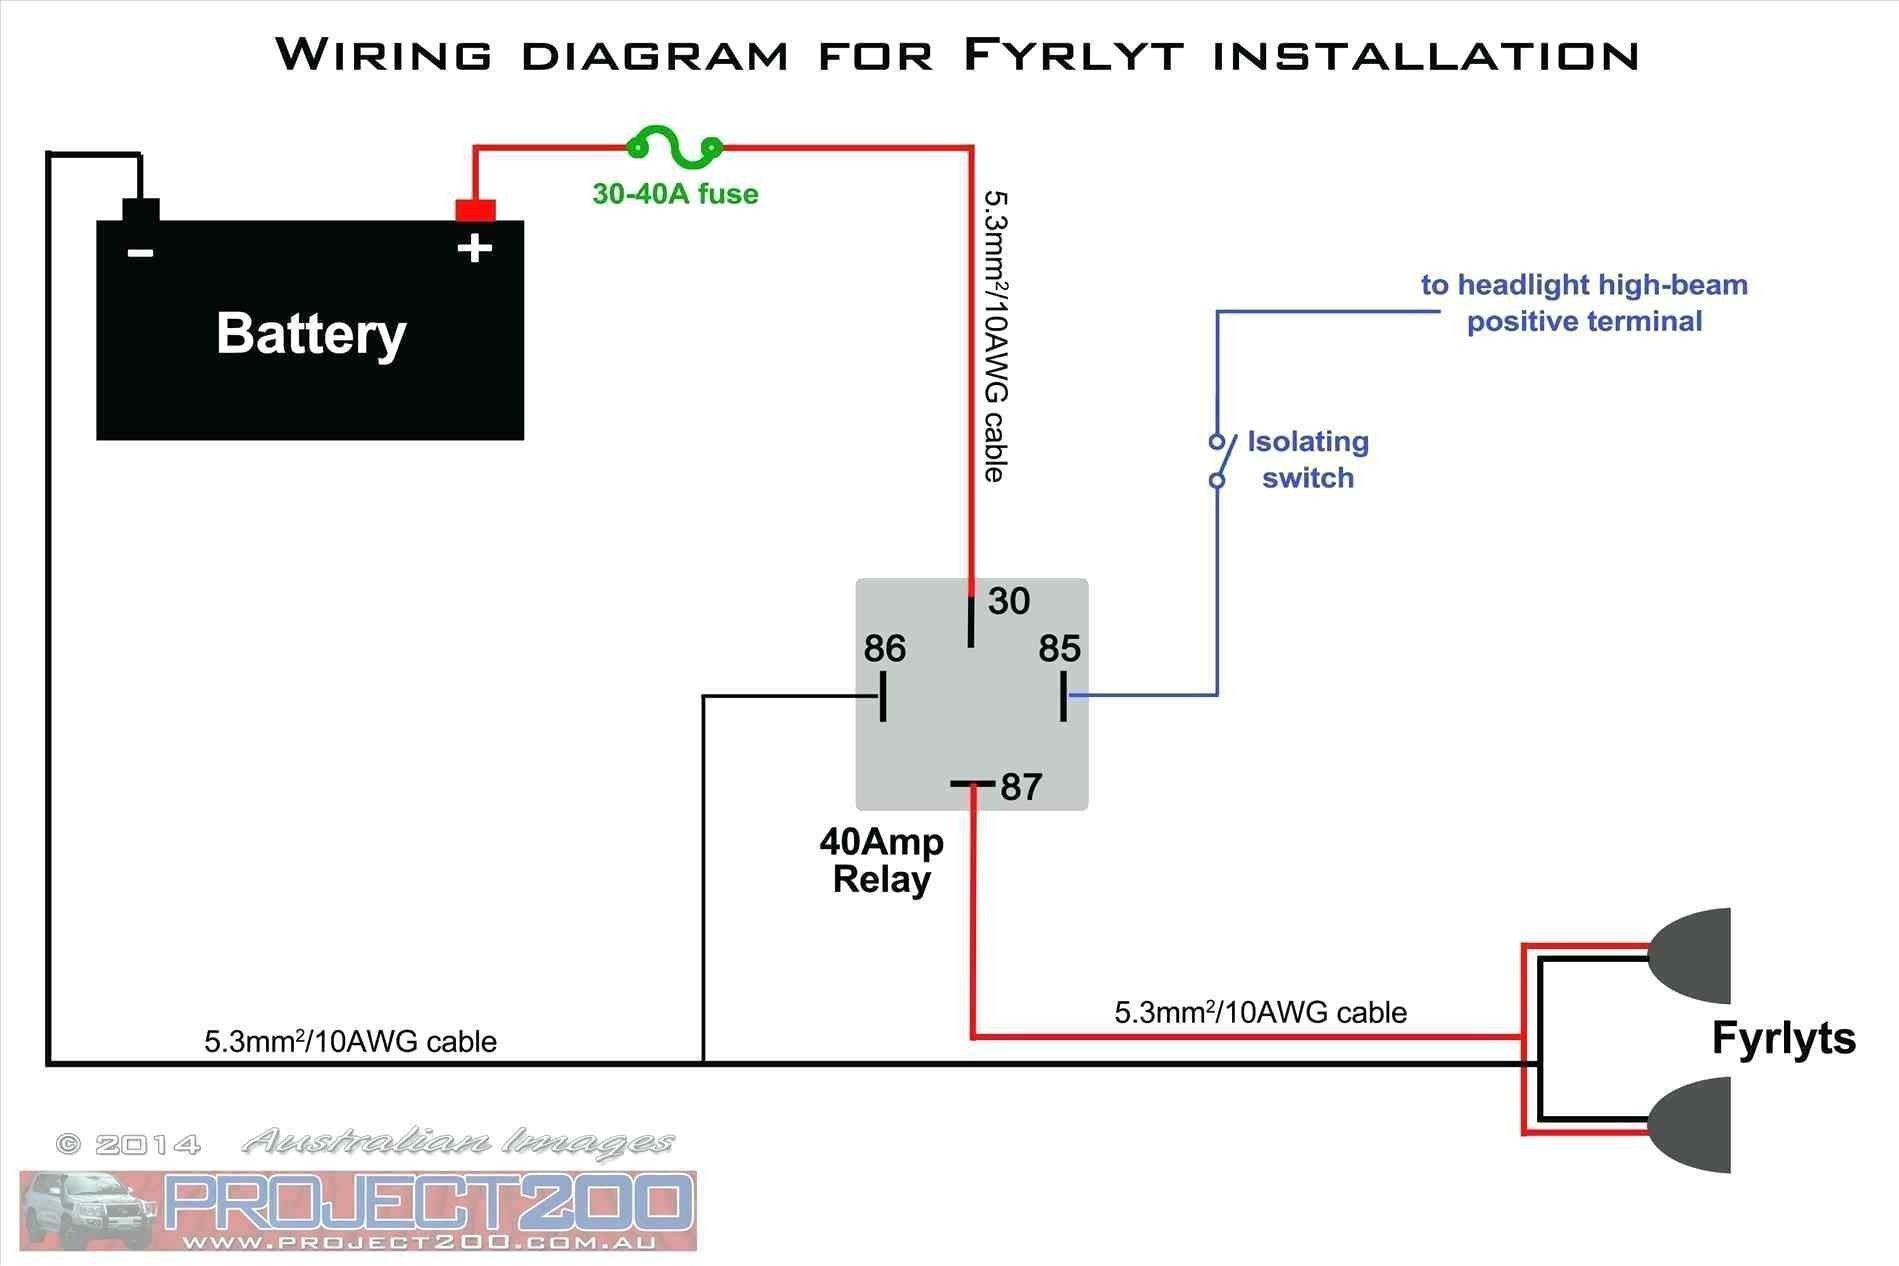 Best Of Wiring Diagram For New Light And Switch Diagrams Digramssample Diagramimages Wiringdia Electrical Circuit Diagram Diagram Electrical Wiring Diagram